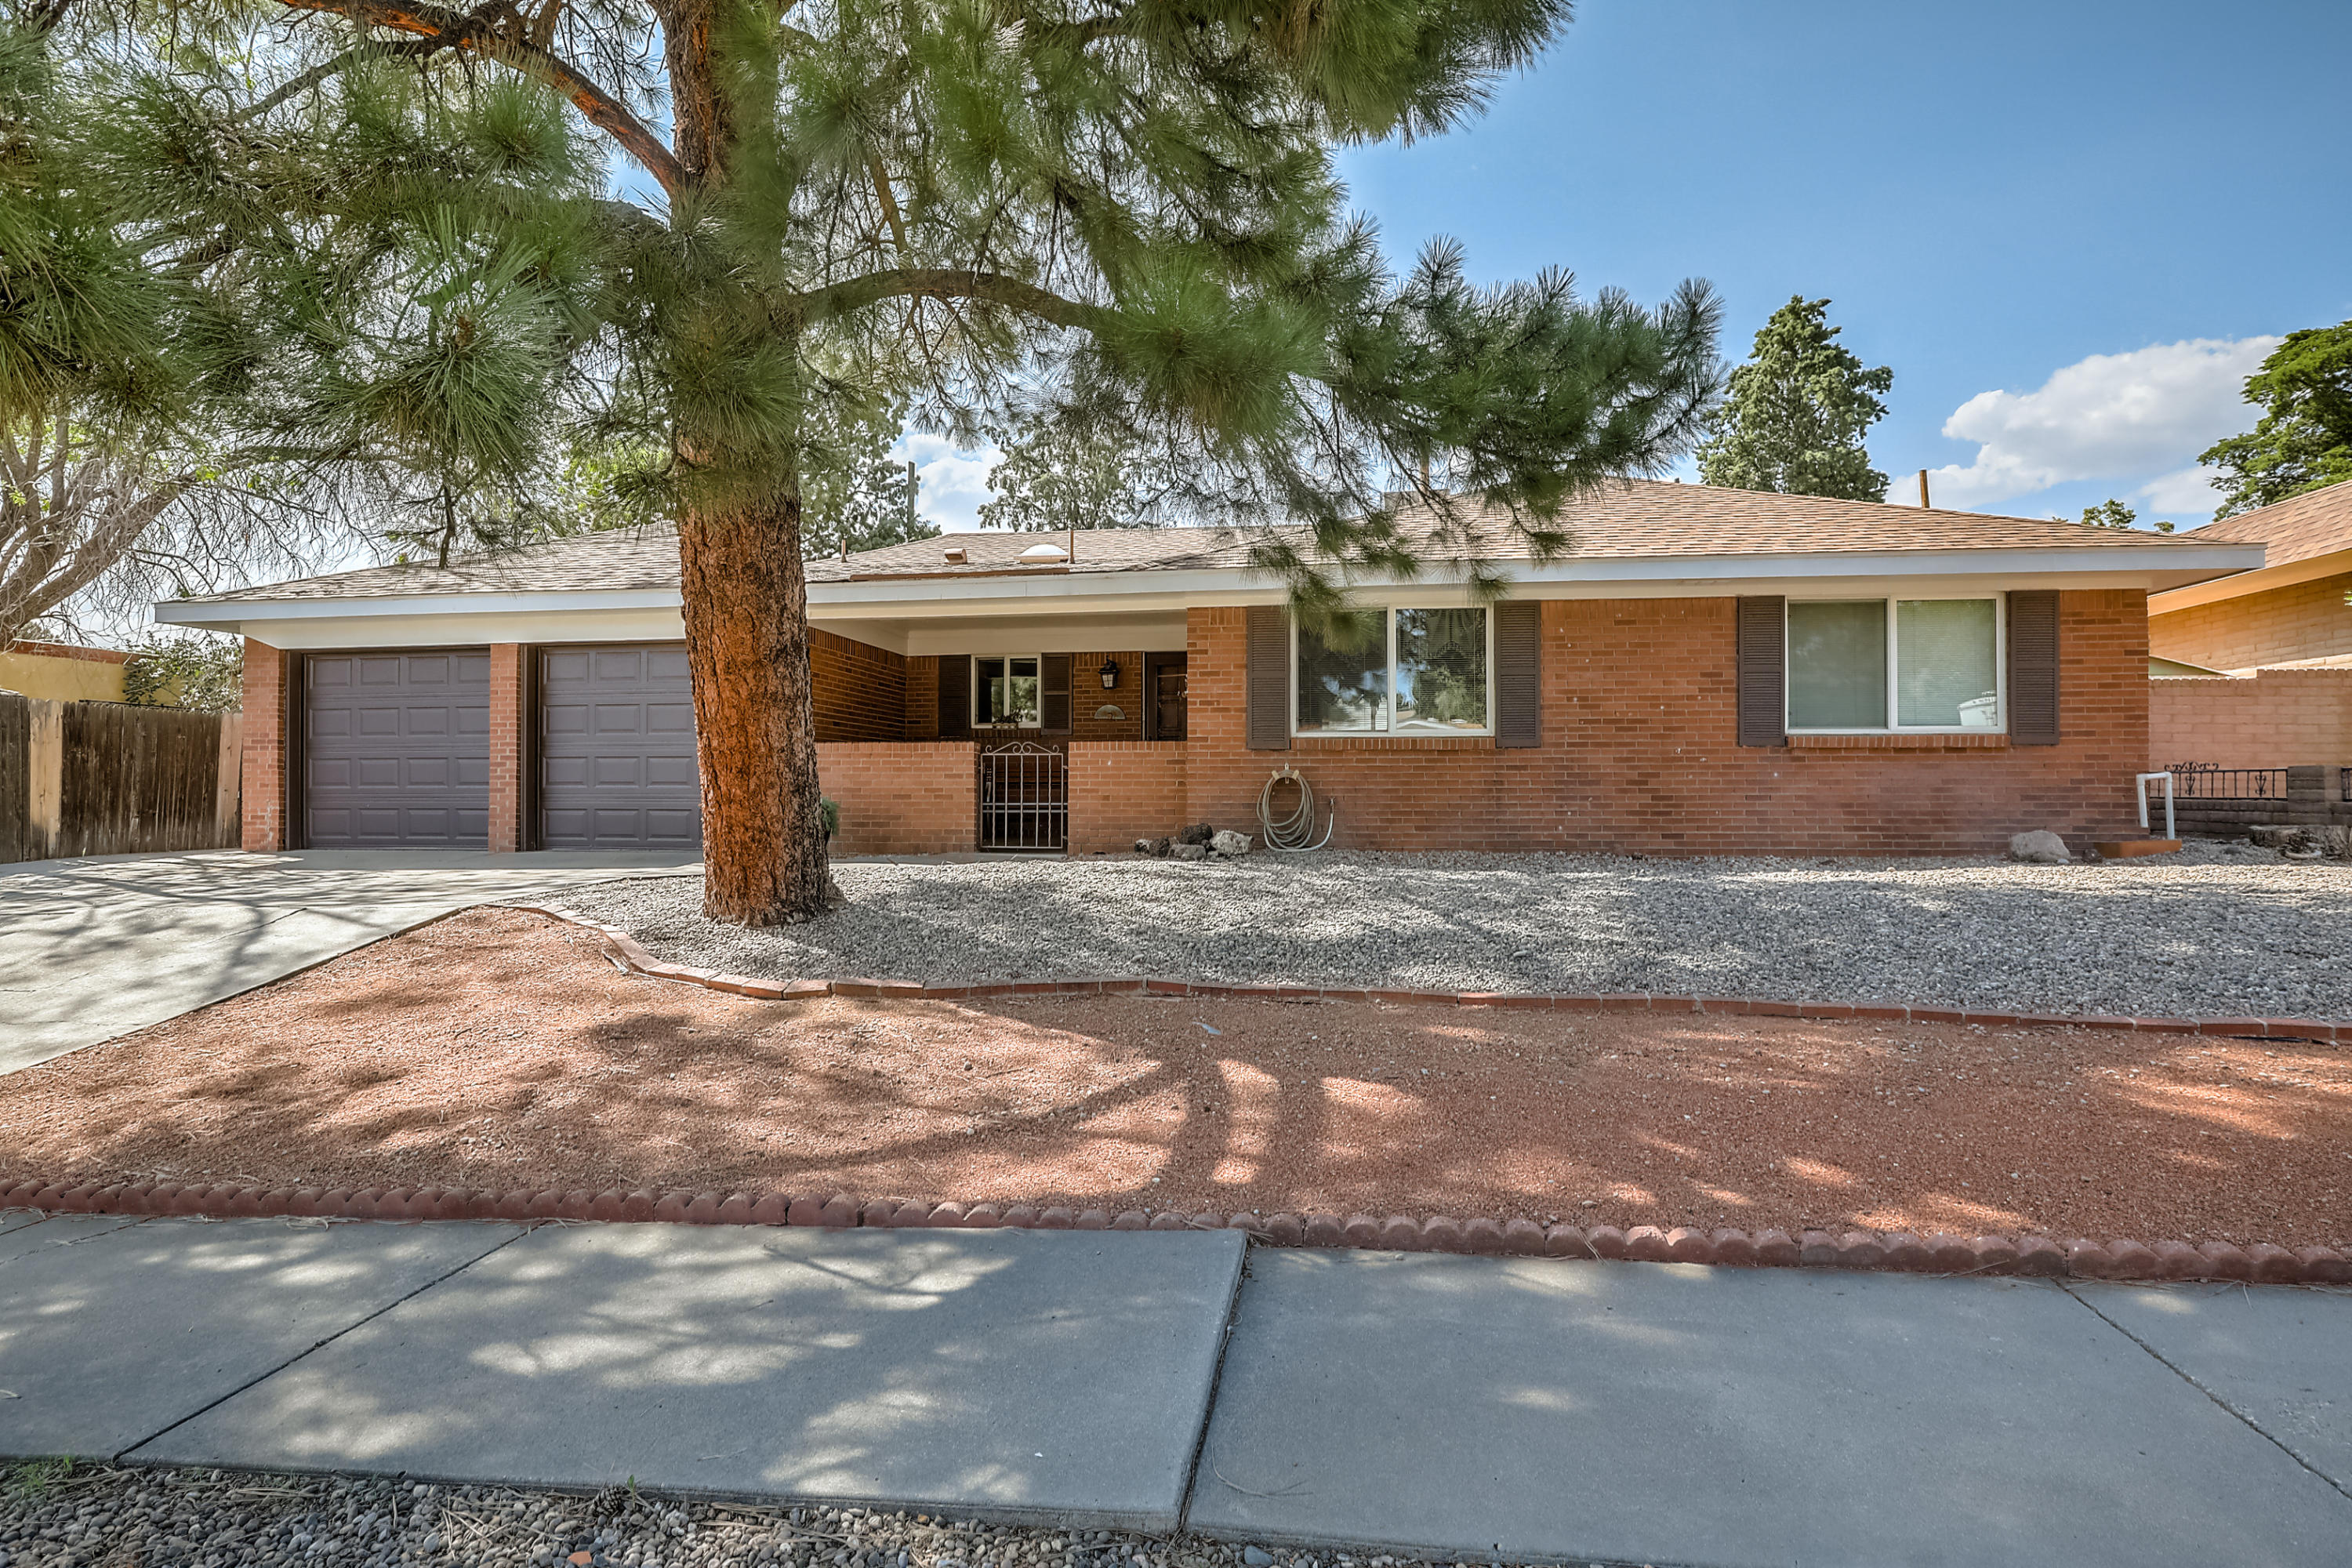 4005 INCA Street NE Property Photo - Albuquerque, NM real estate listing